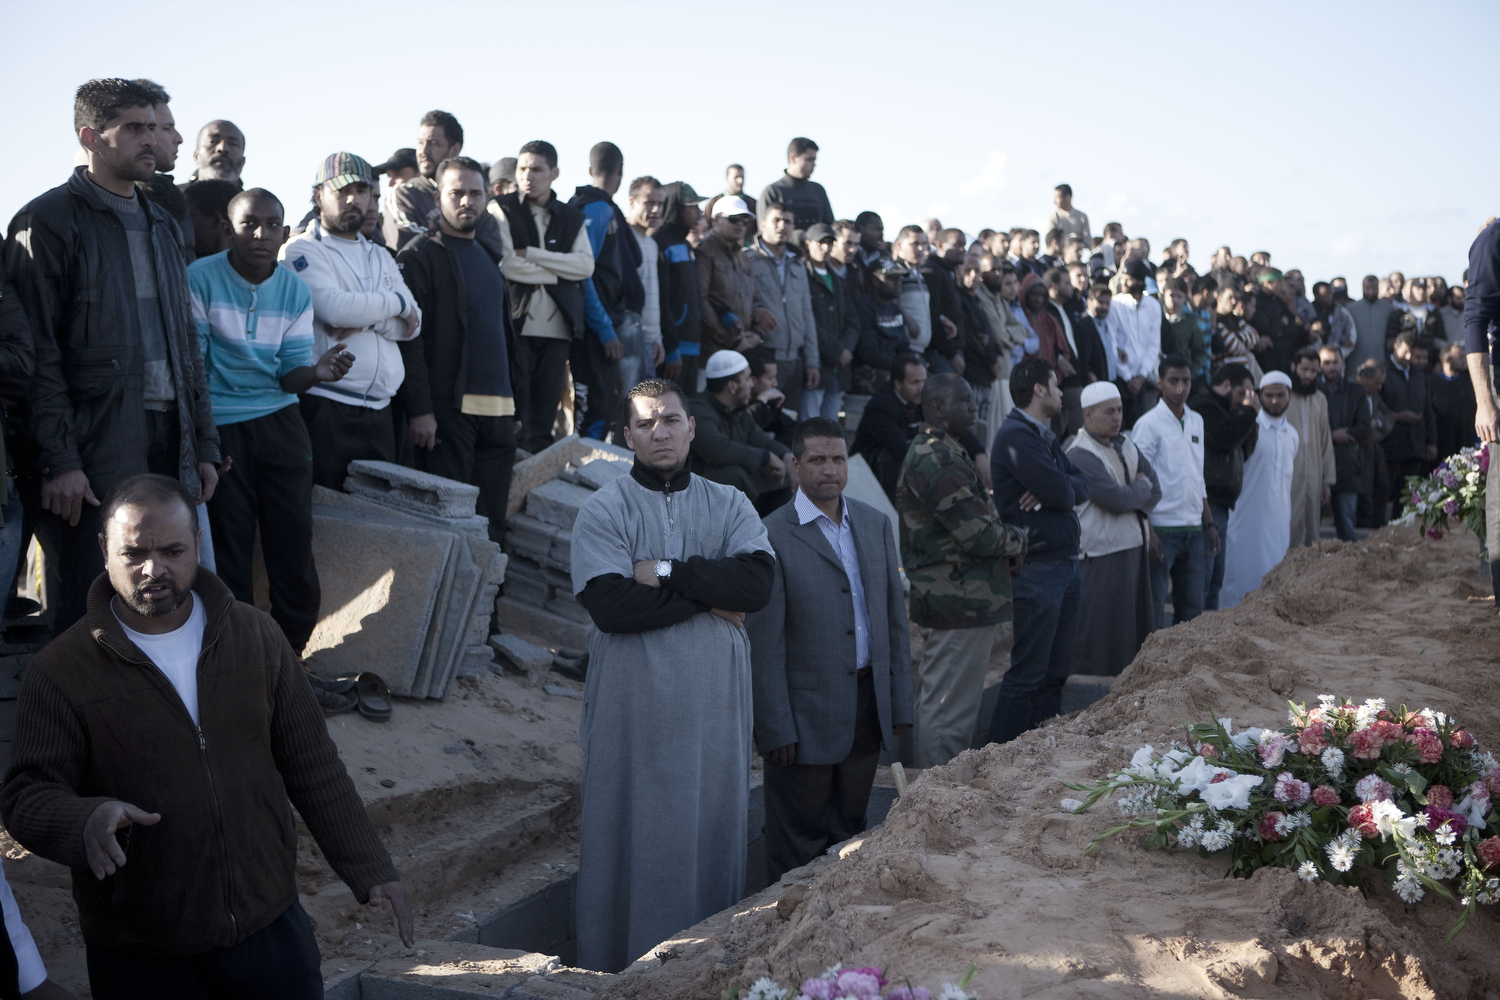 Men stand in prepared graves as they await the arrival of people allegedly killed during missile strikes, March 20, 2011.